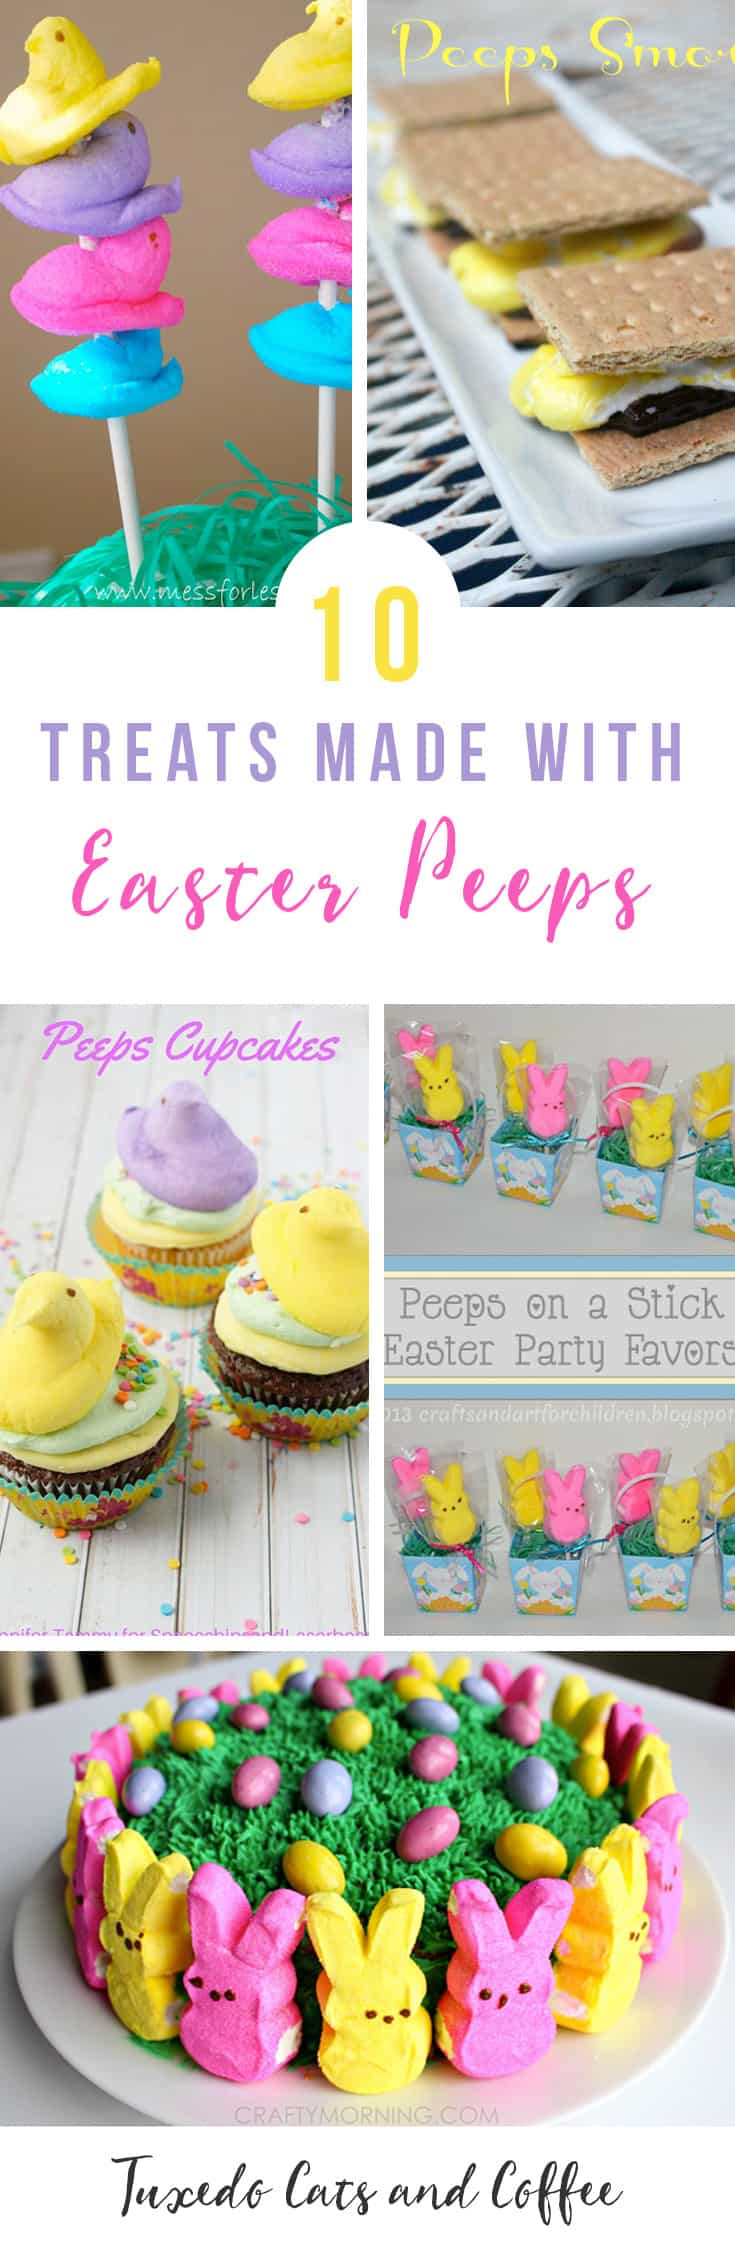 Don't you just love Easter Peeps? They come in such pretty colors and there's bunnies and chicks, oh my! Here are 10+ treats made with Easter Peeps marshmallows just in time for Easter Sunday.